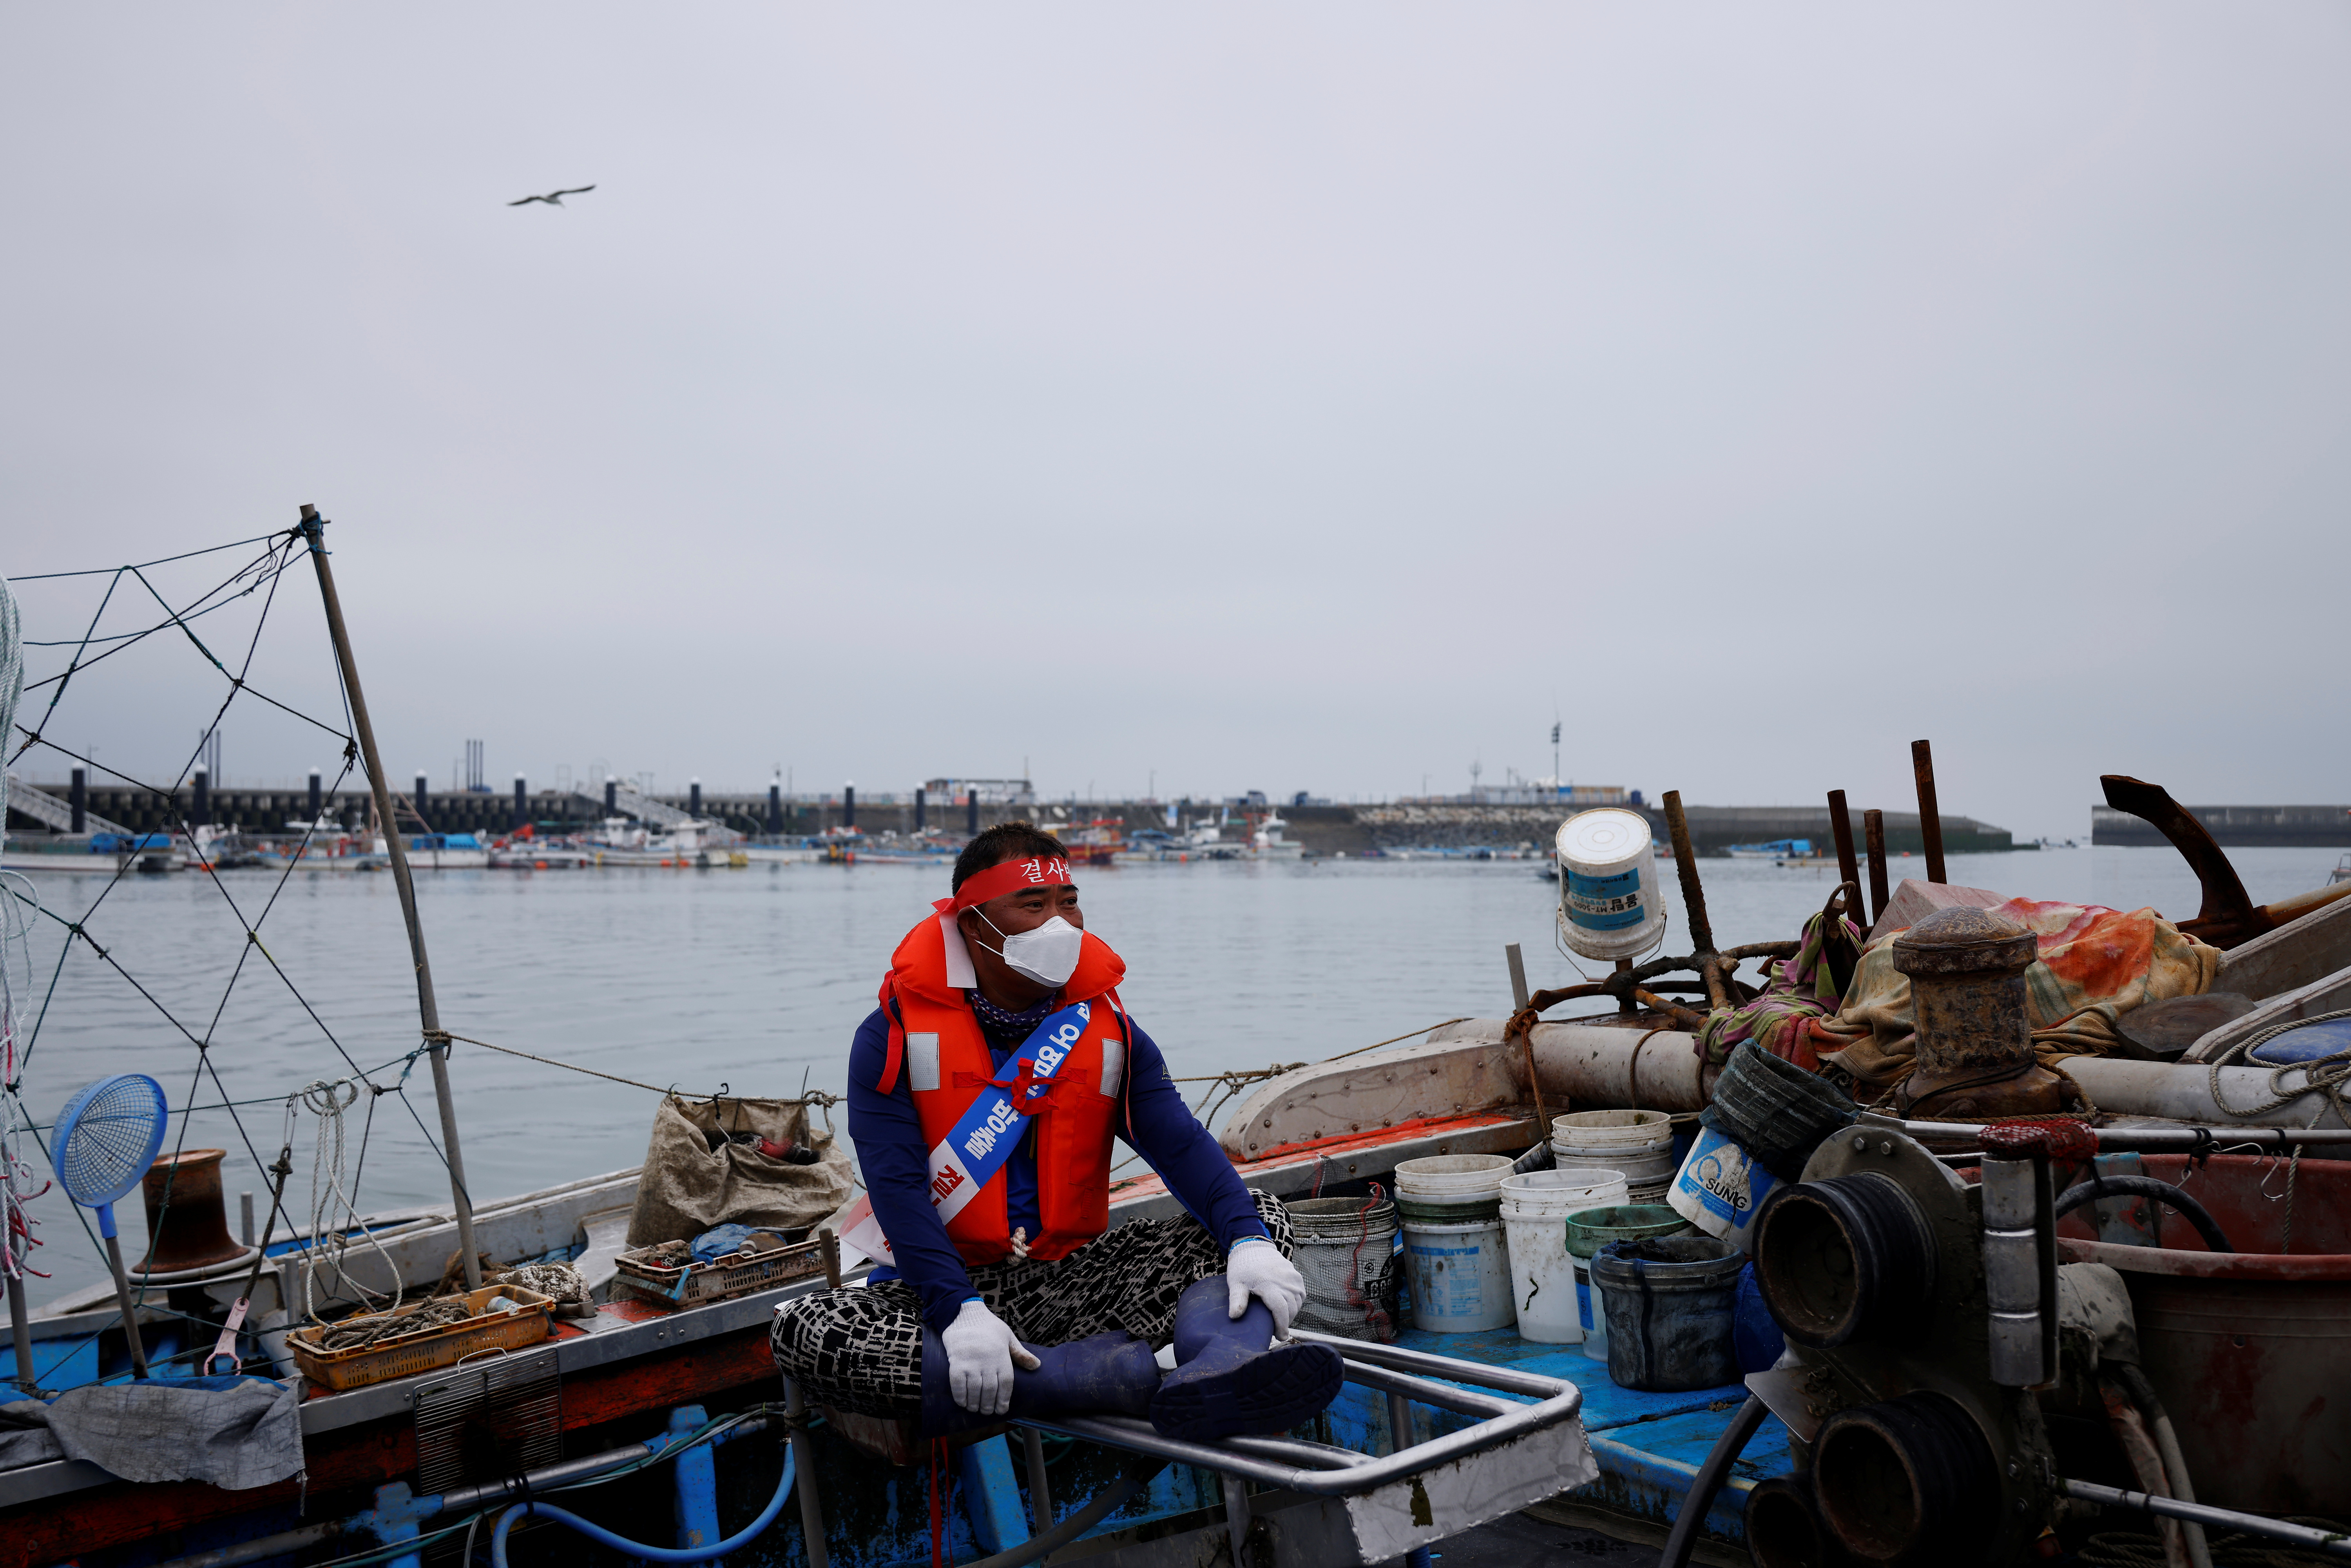 A South Korean fisherman sits on his boat during a marine protest, part of nationwide protests to demand Japan withdraw its decision to release contaminated water from its crippled Fukushima nuclear plant into the sea, at the sea off Incheon, South Korea, April 30, 2021.  REUTERS/Kim Hong-Ji